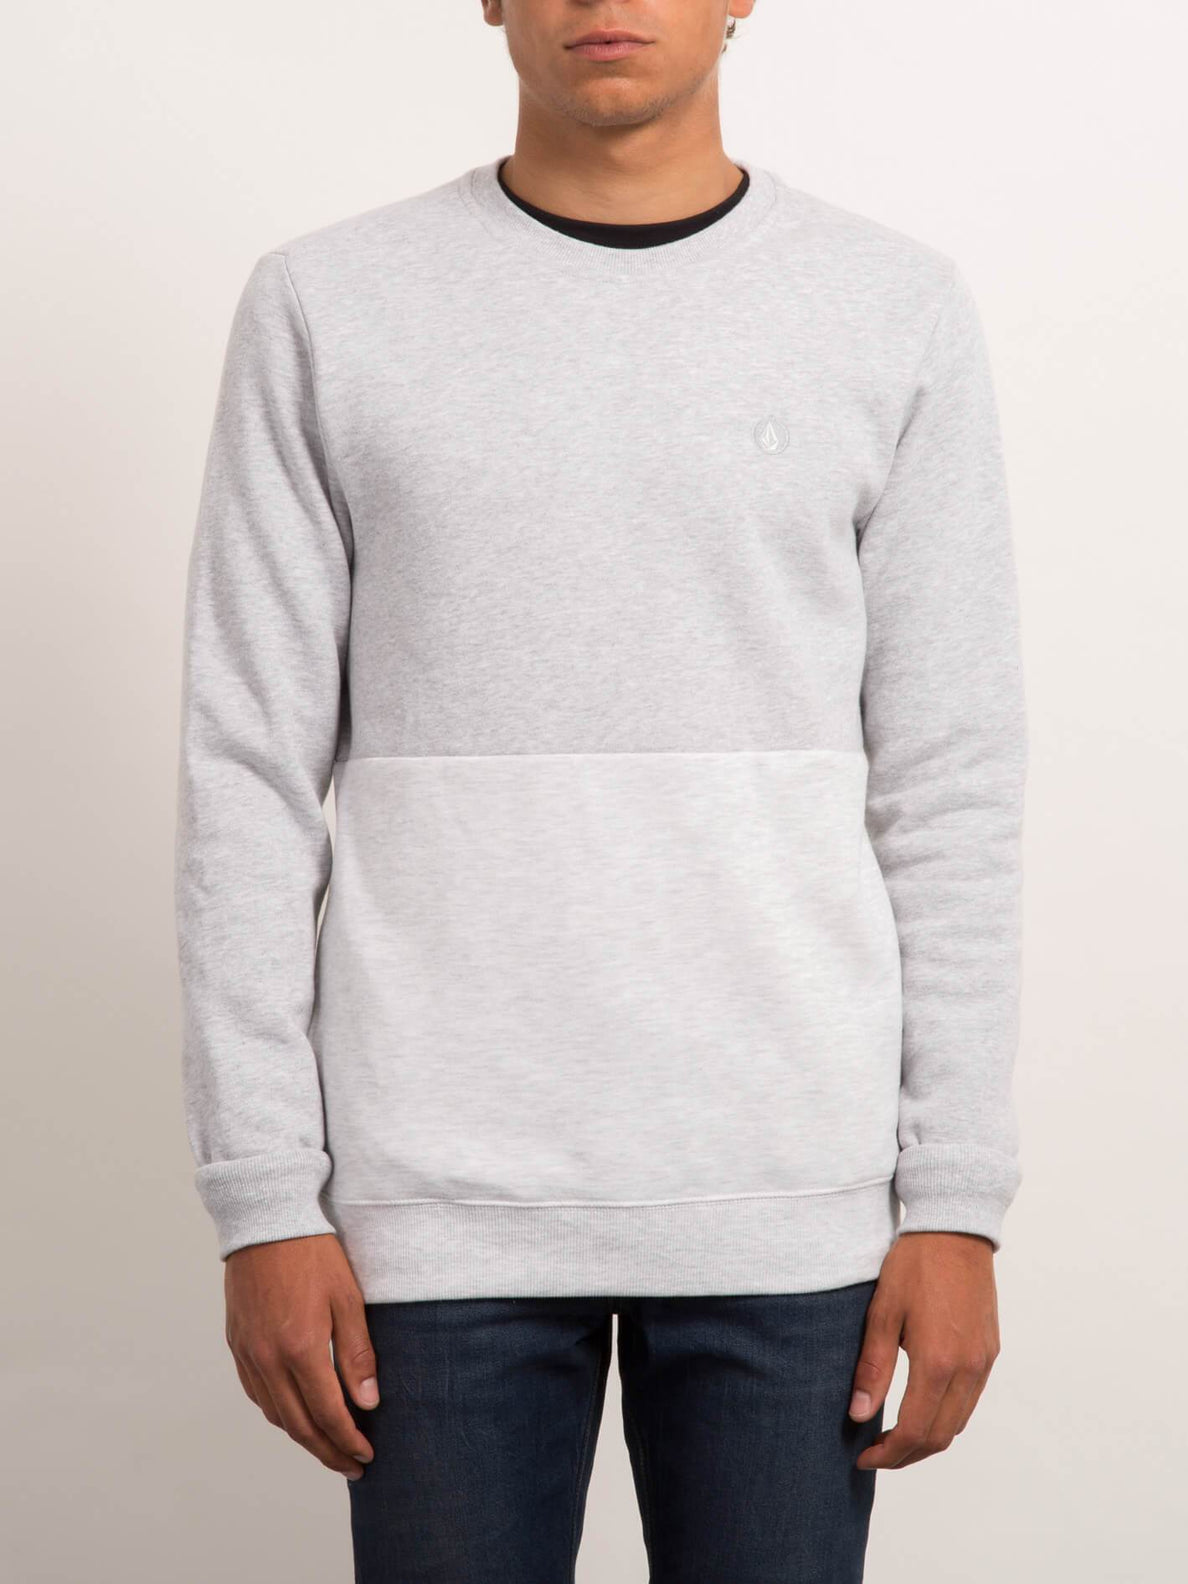 Sweatshirt Single Stone Division - Mist